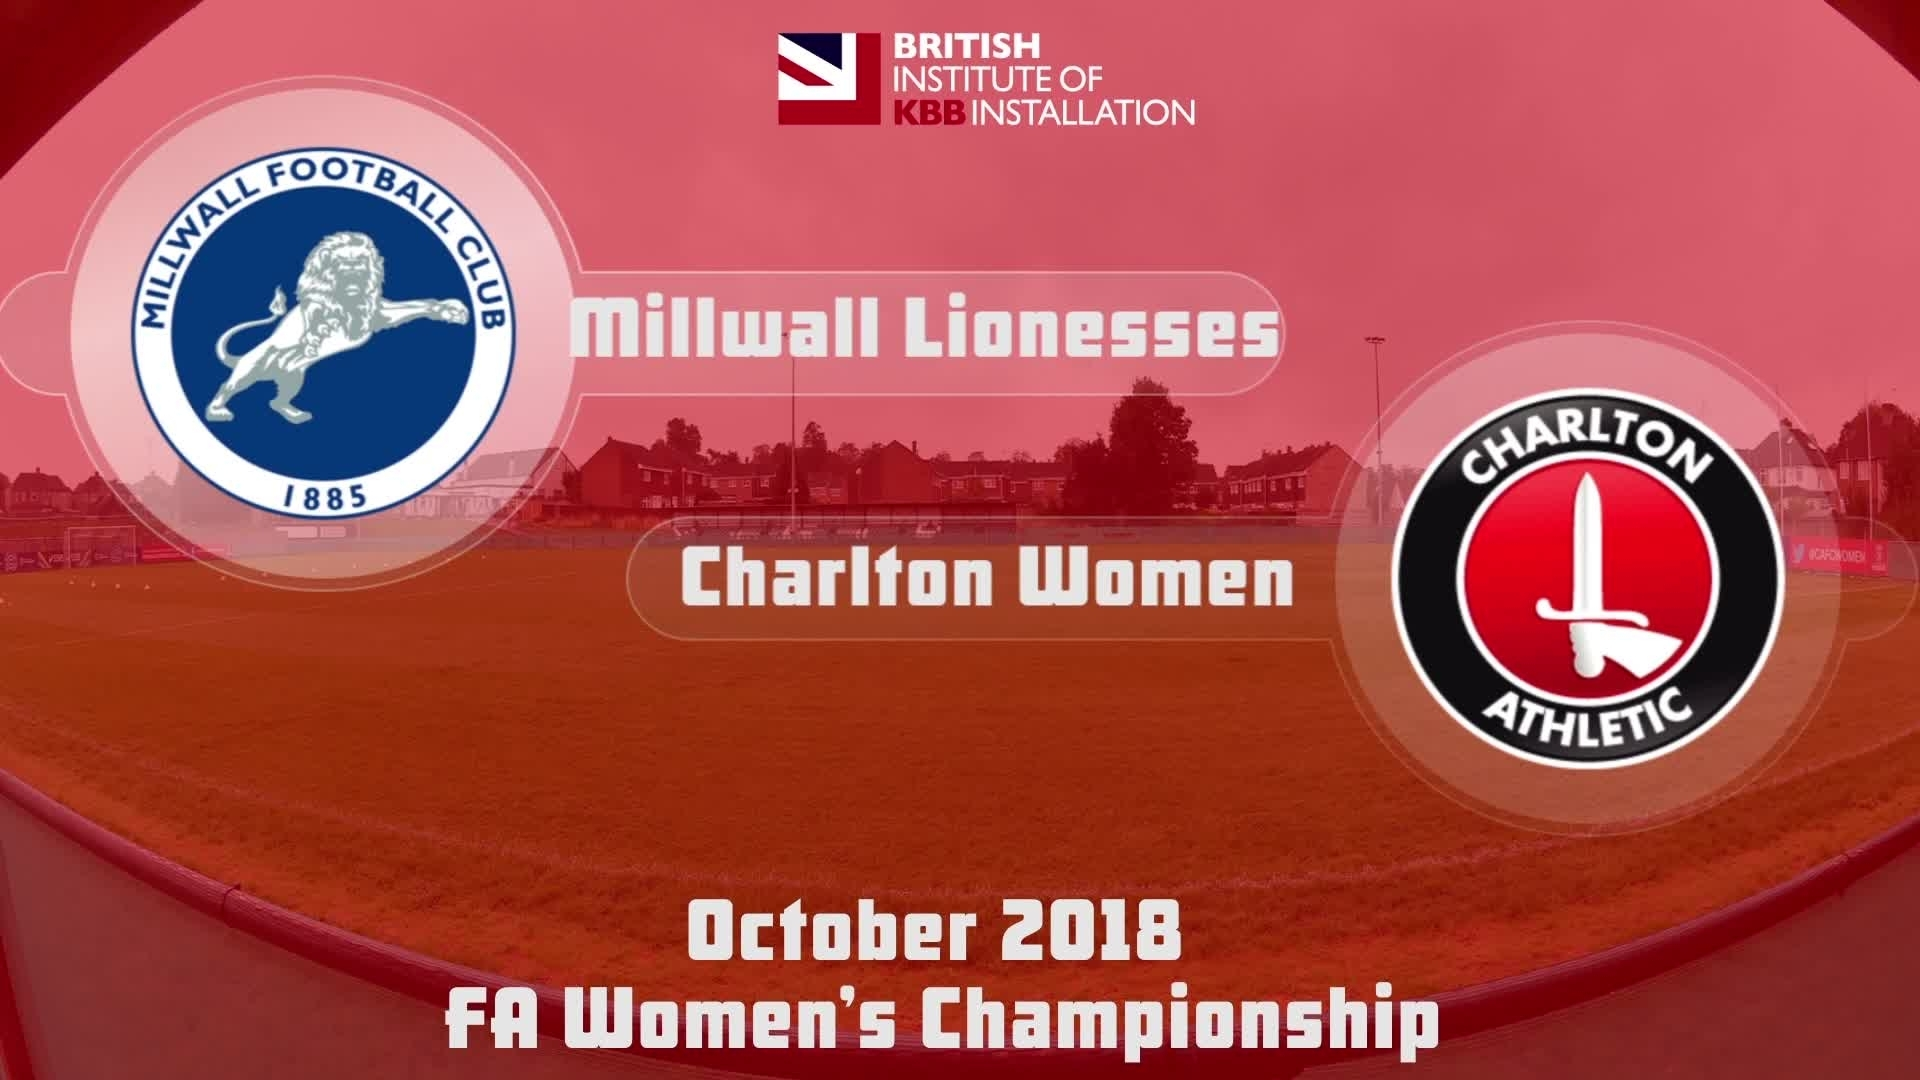 WOMEN HIGHLIGHTS | Millwall Lionesses 0 Charlton Women 8 (Oct 2018)